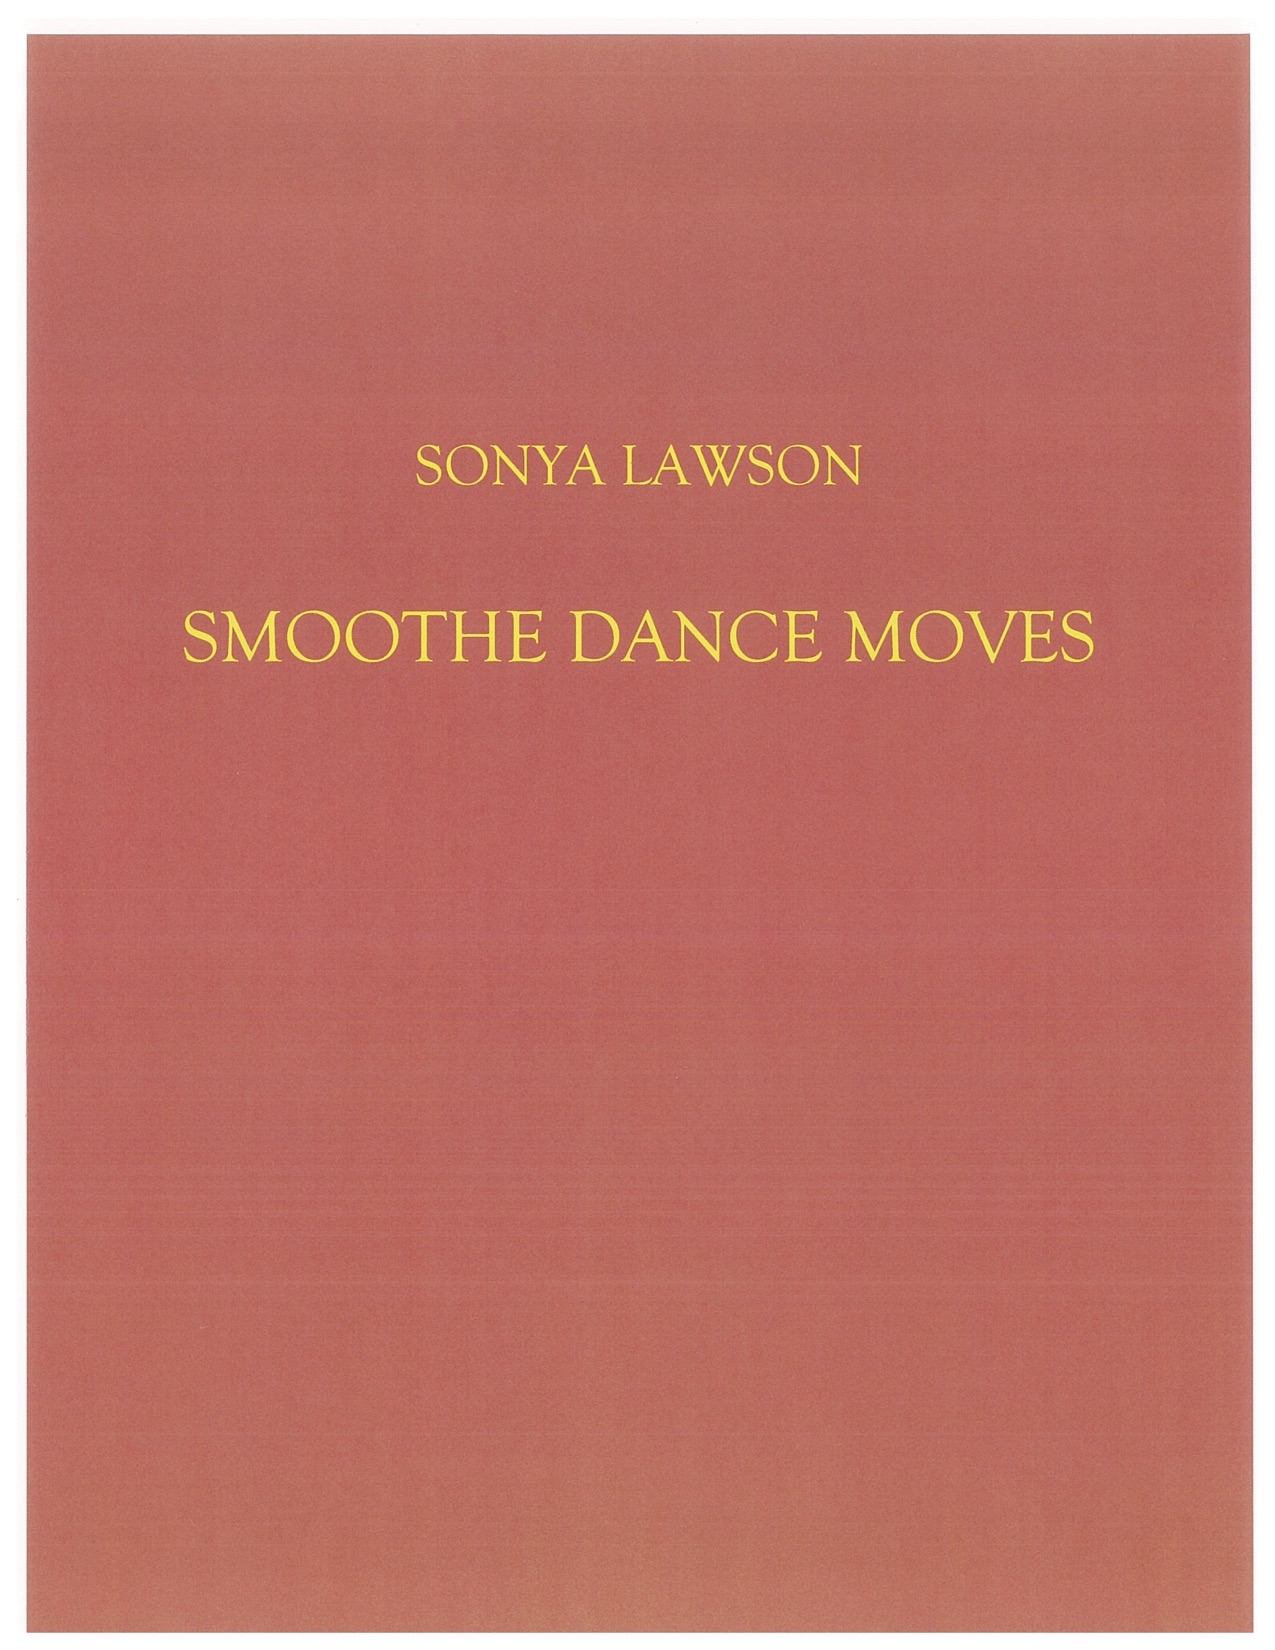 The cover page of my chapbook has the author's name an introduction to the dances.